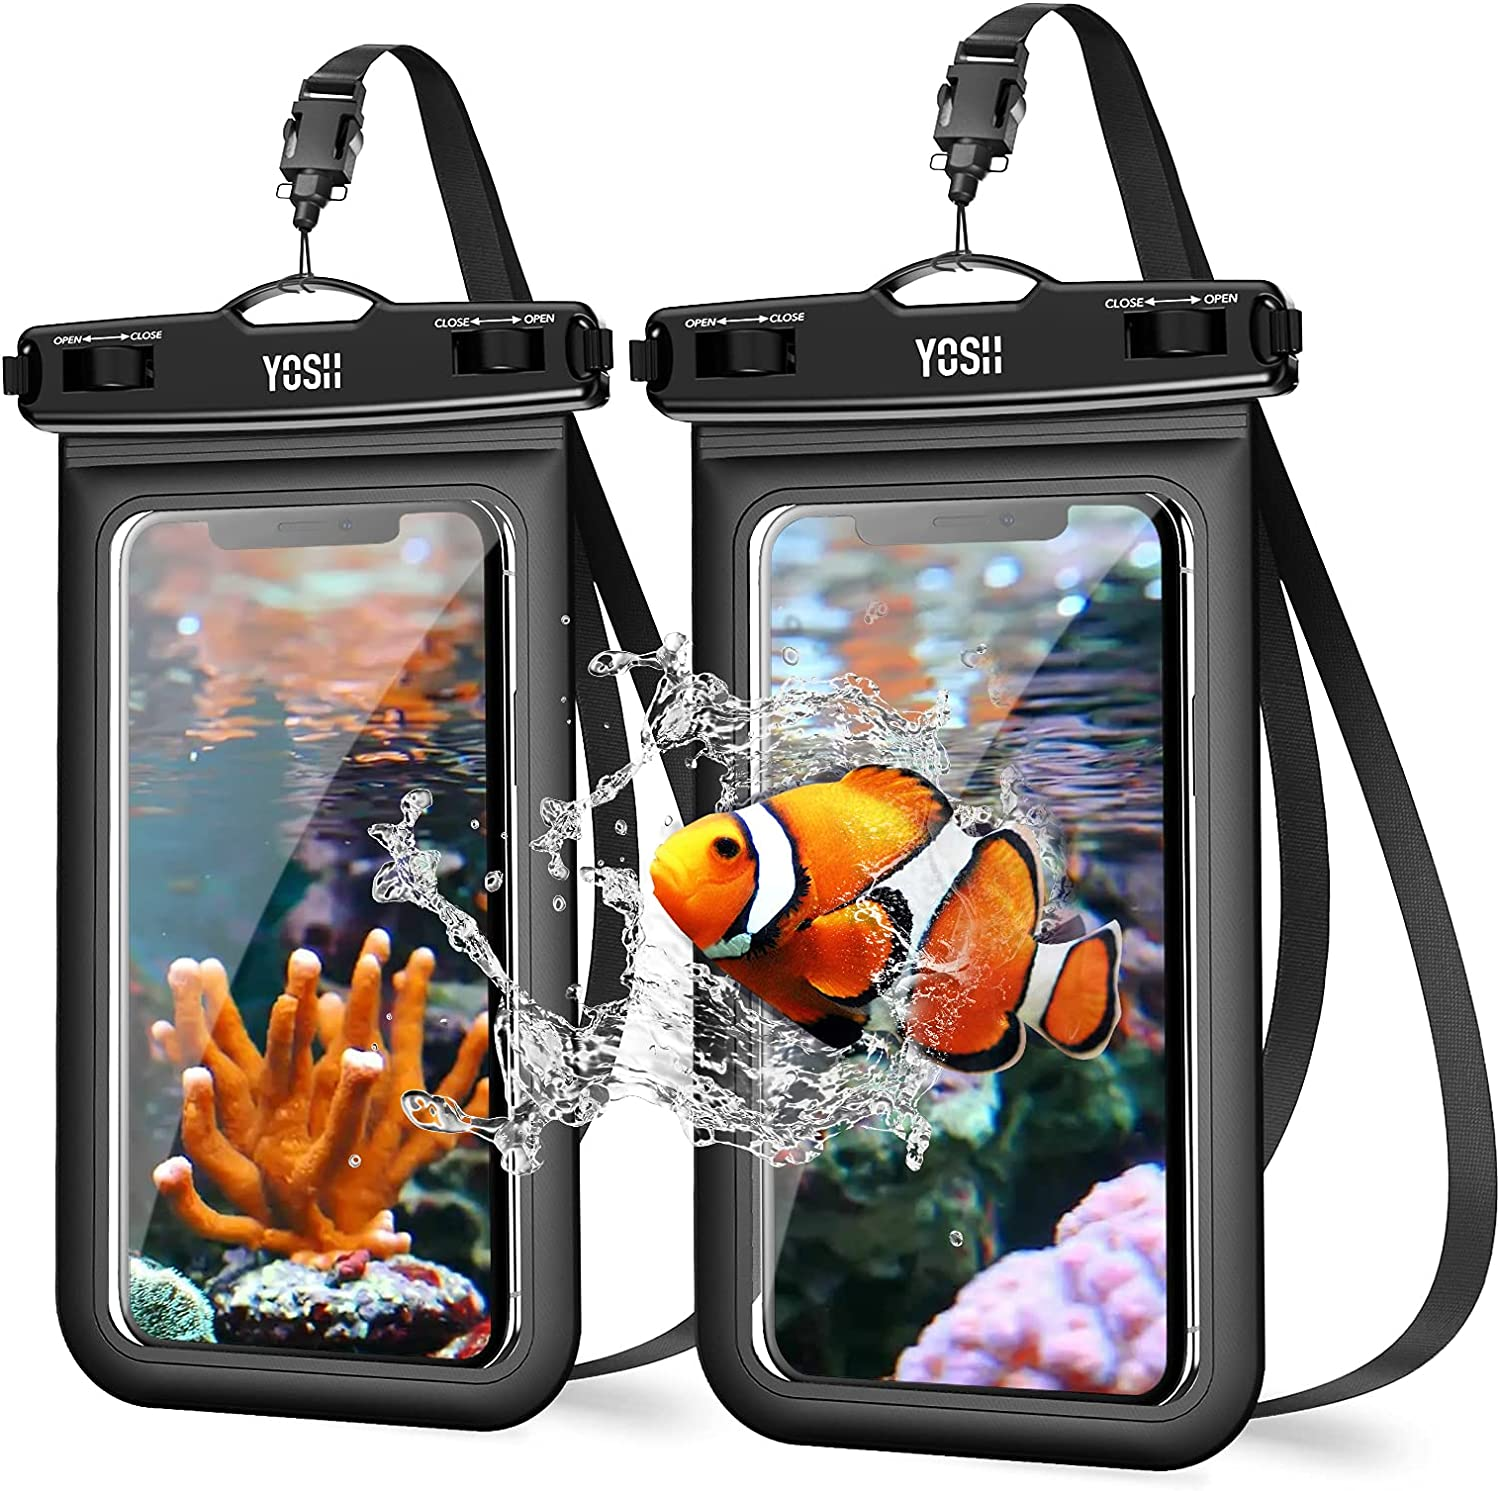 YOSH Waterproof Phone Case Universal Waterproof Phone Pouch IPX8 Dry Bag Compatible for iPhone 12 11 SE X 8 7 6 Galaxy S21 Pixel up to 6.8